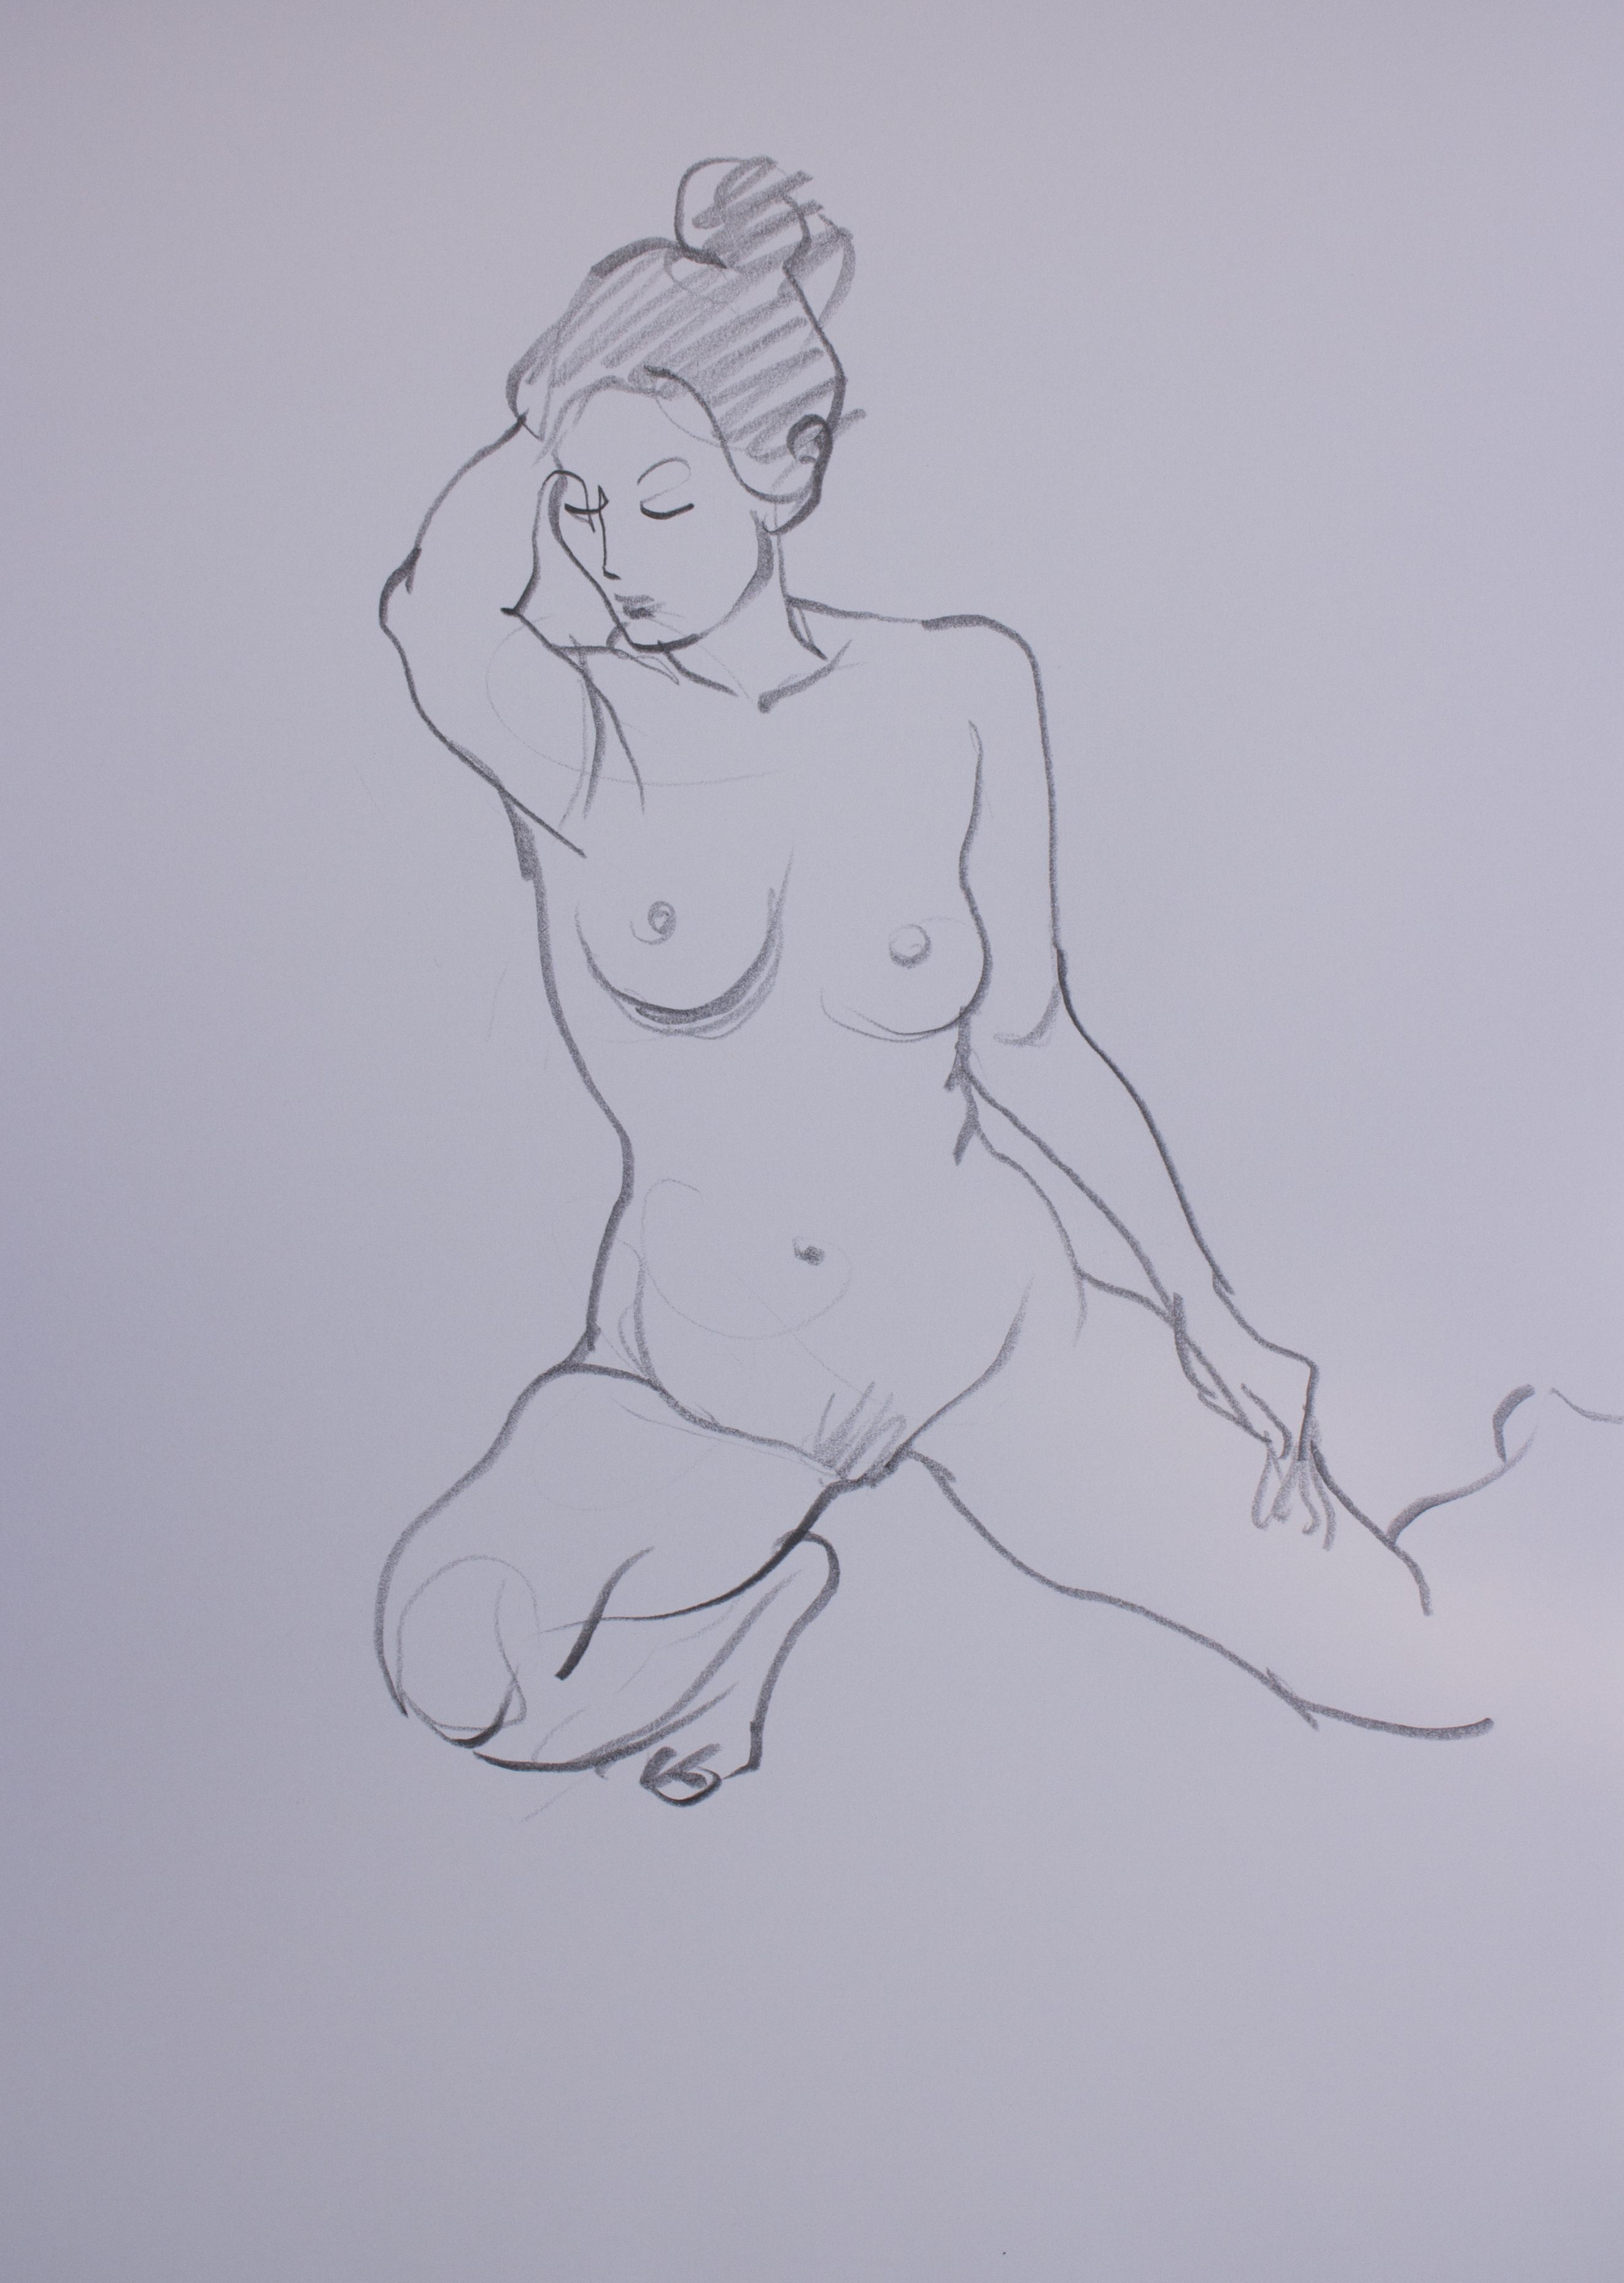 Lifedrawing drawing pencil drawing nude drawing woman nude croquis